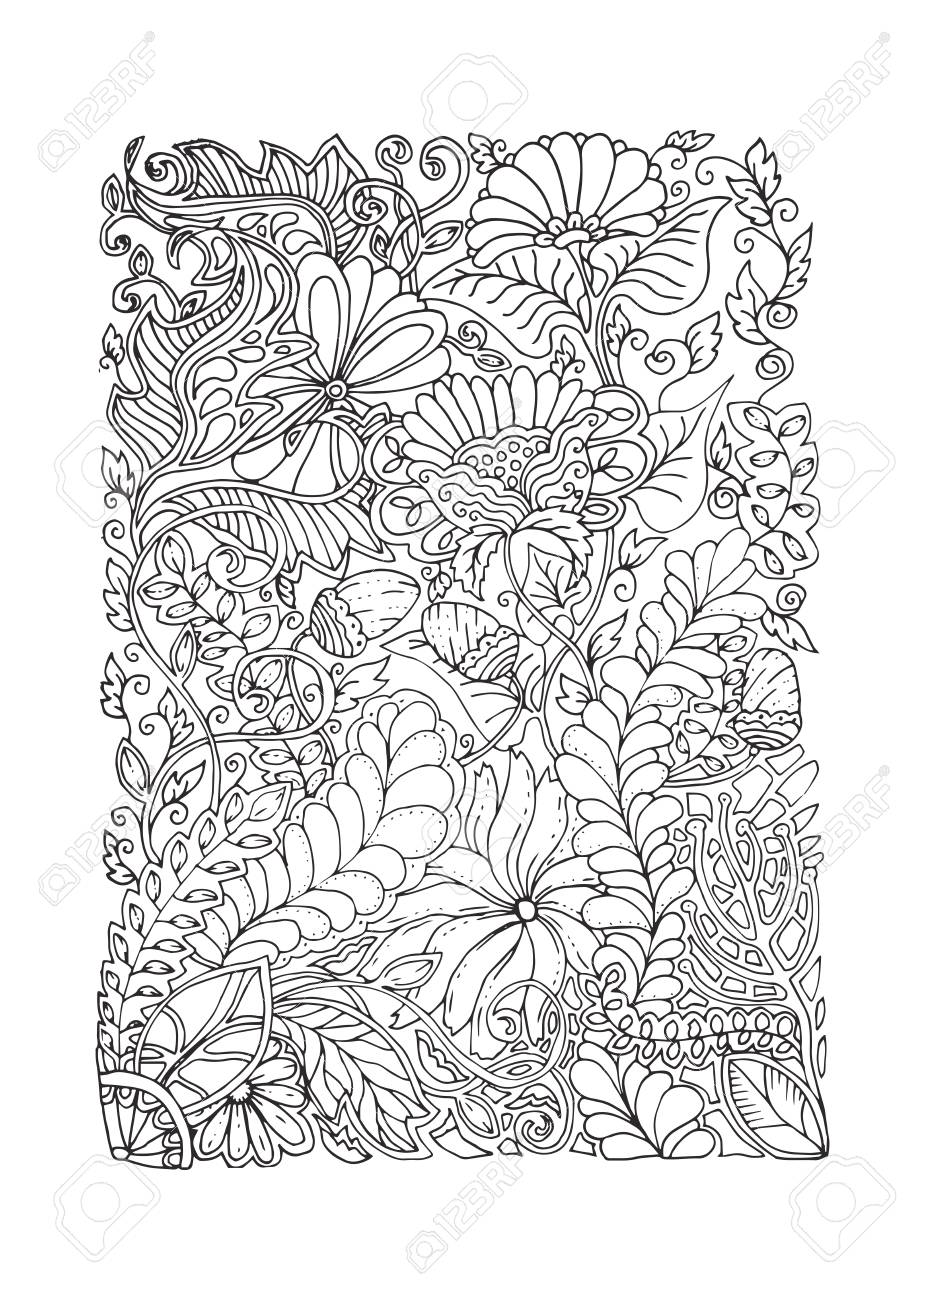 Coloriage Couleur Printemps.Conception De Printemps Adultes Page De Coloriage Couleur Noir Et